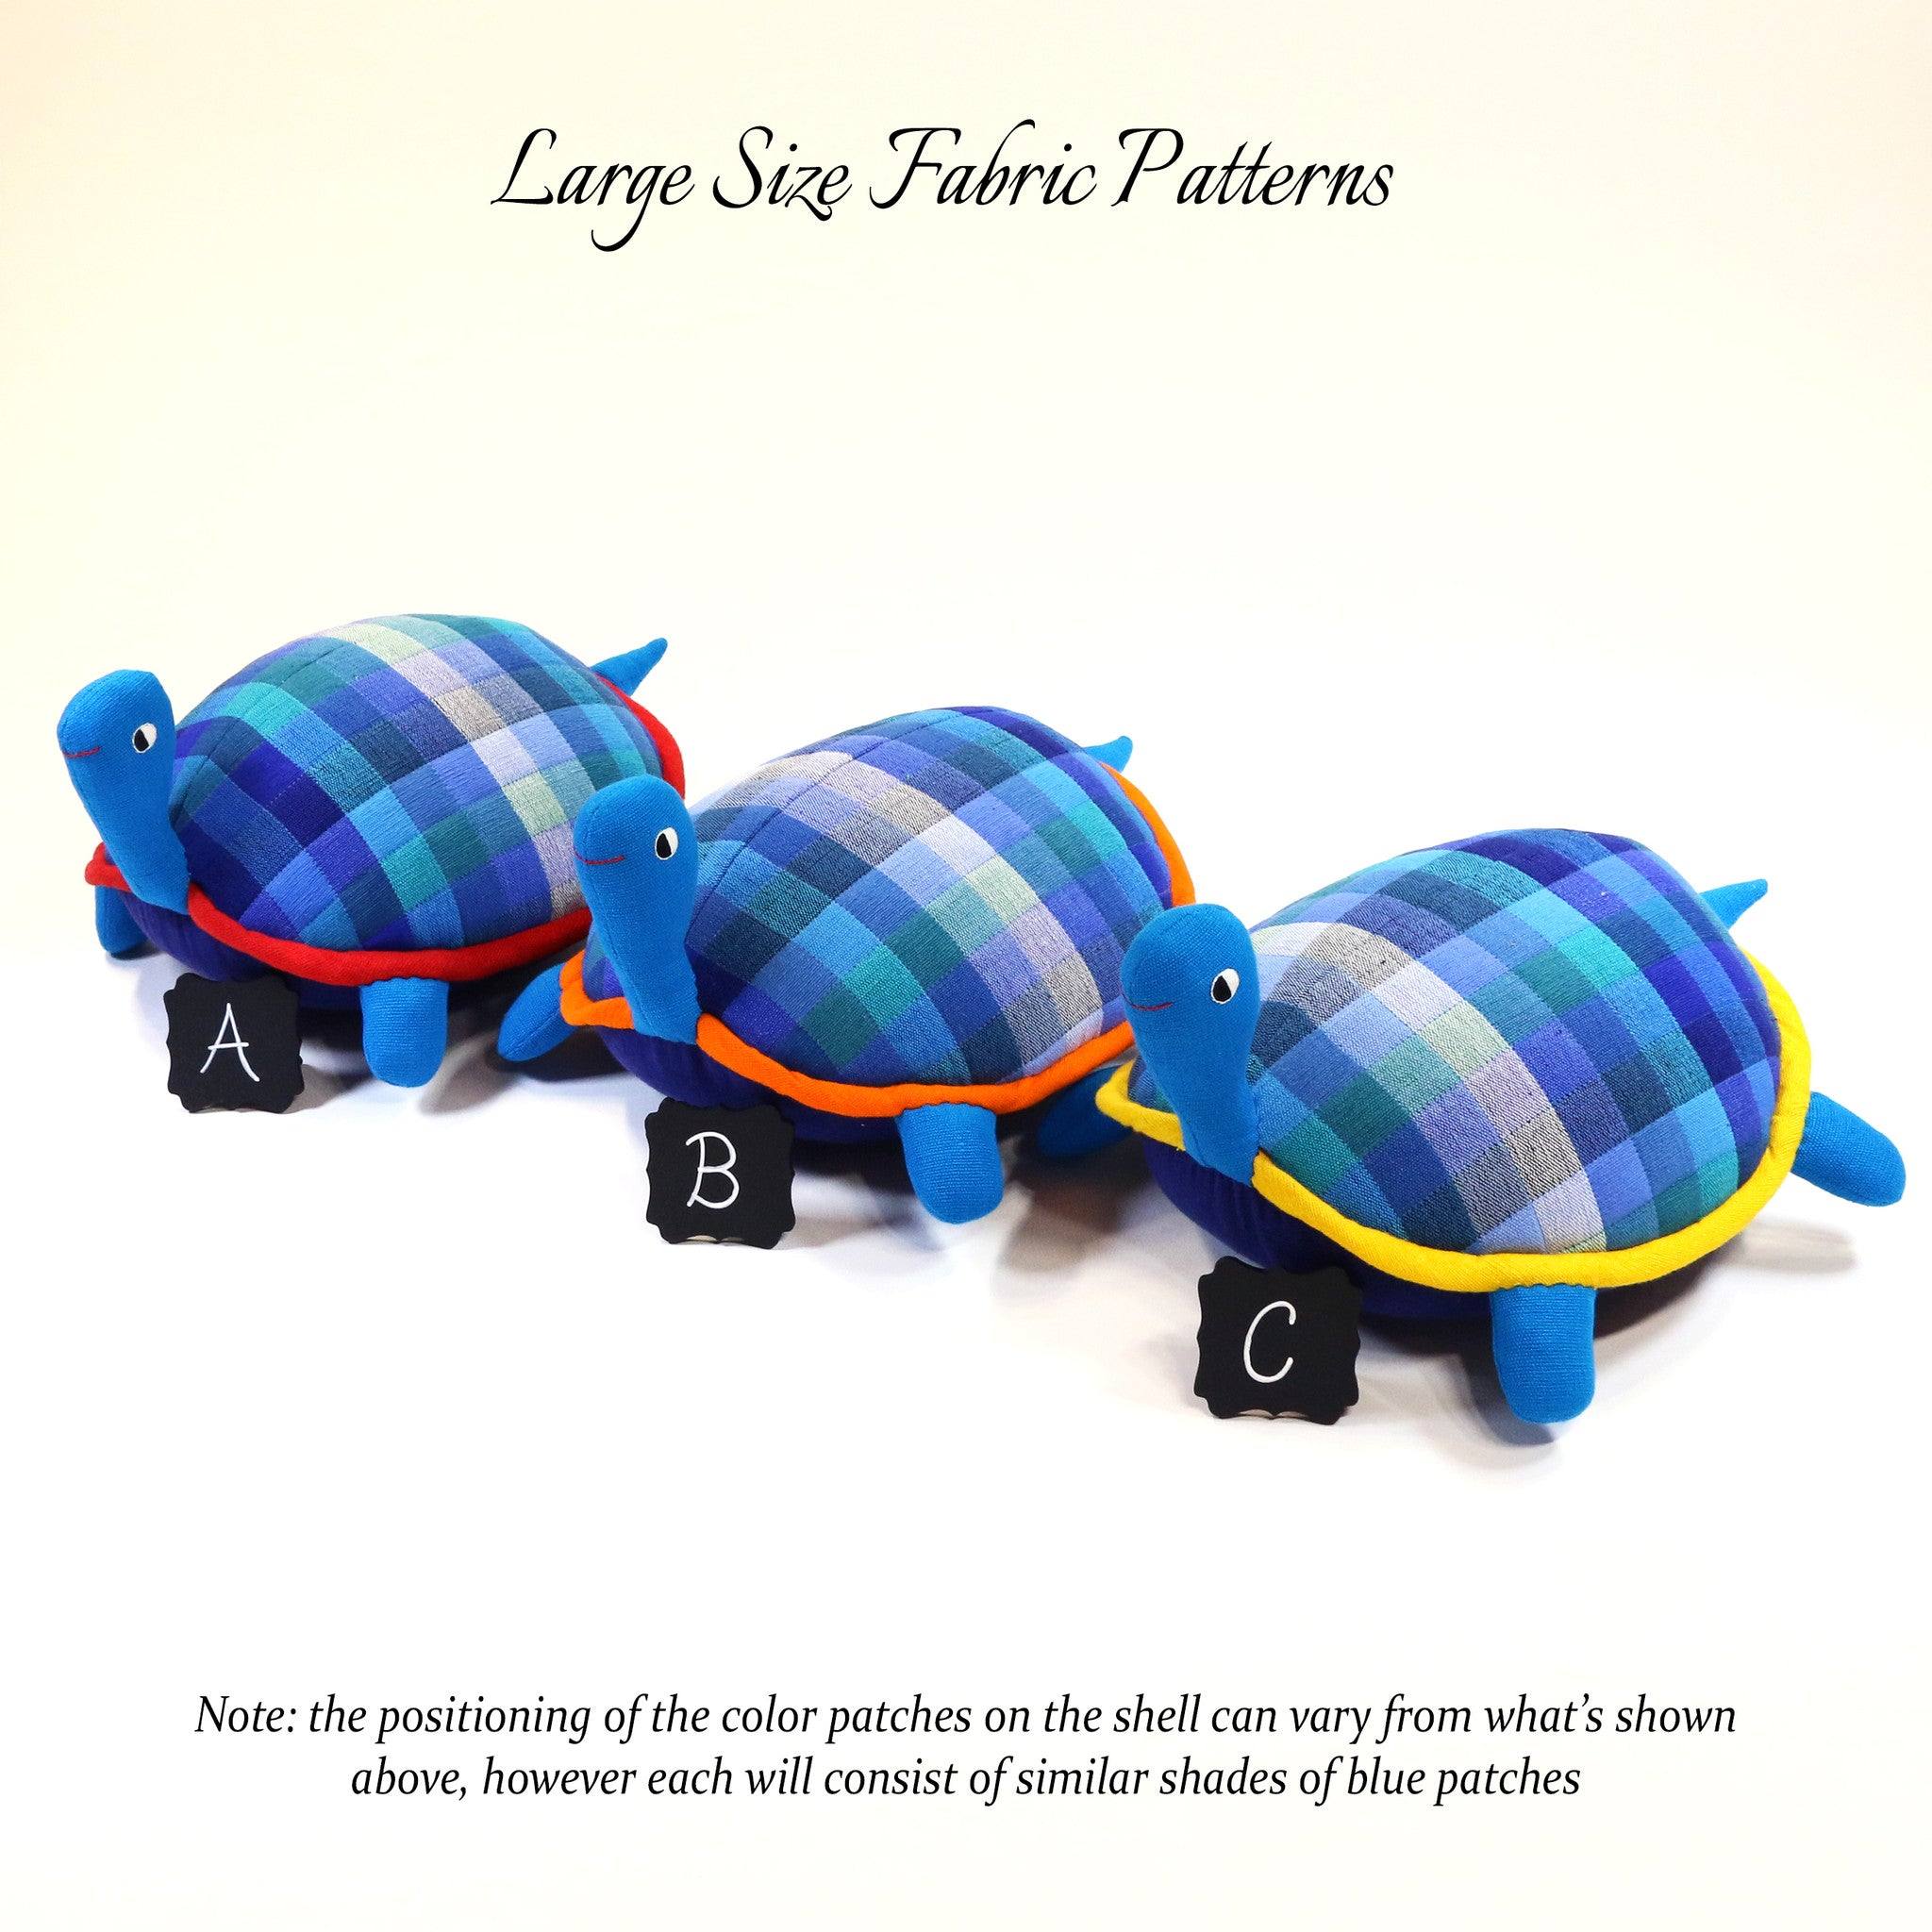 Tommy, the Turtle – all large size fabric patterns shown